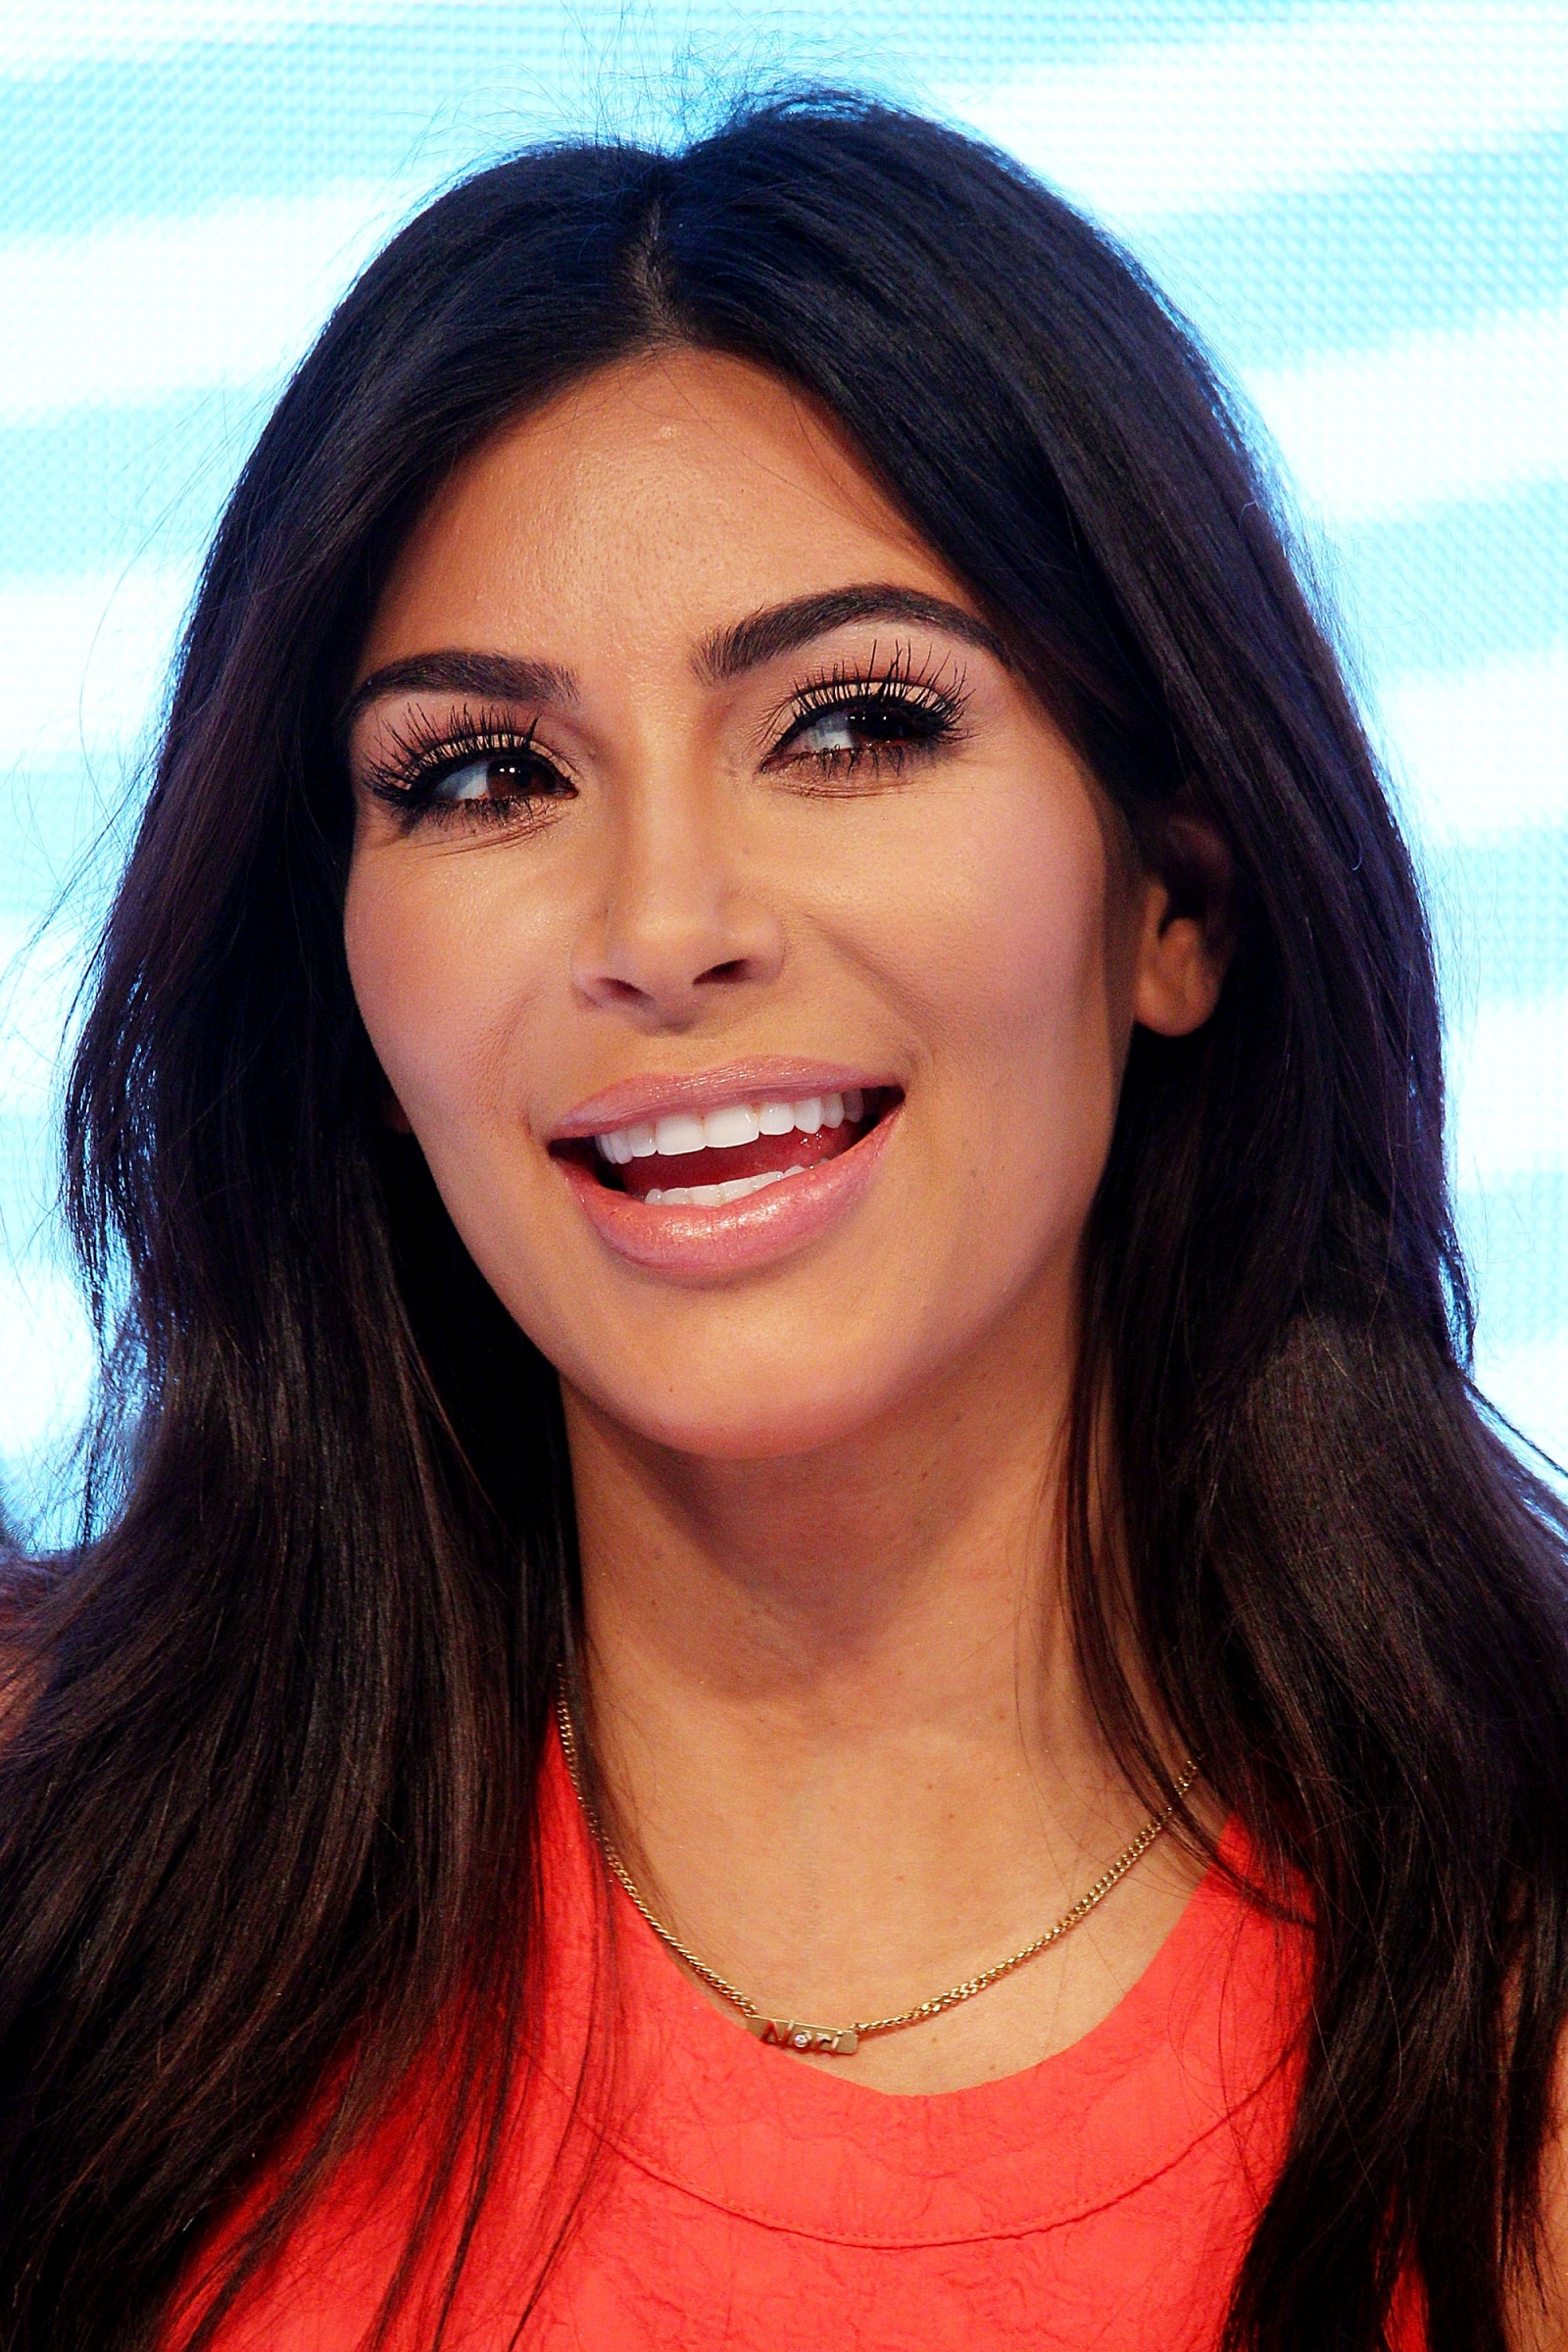 Kim Kardashian attends the Kardashian Kollection Spring Launch at Westfield Parramatta in Australia